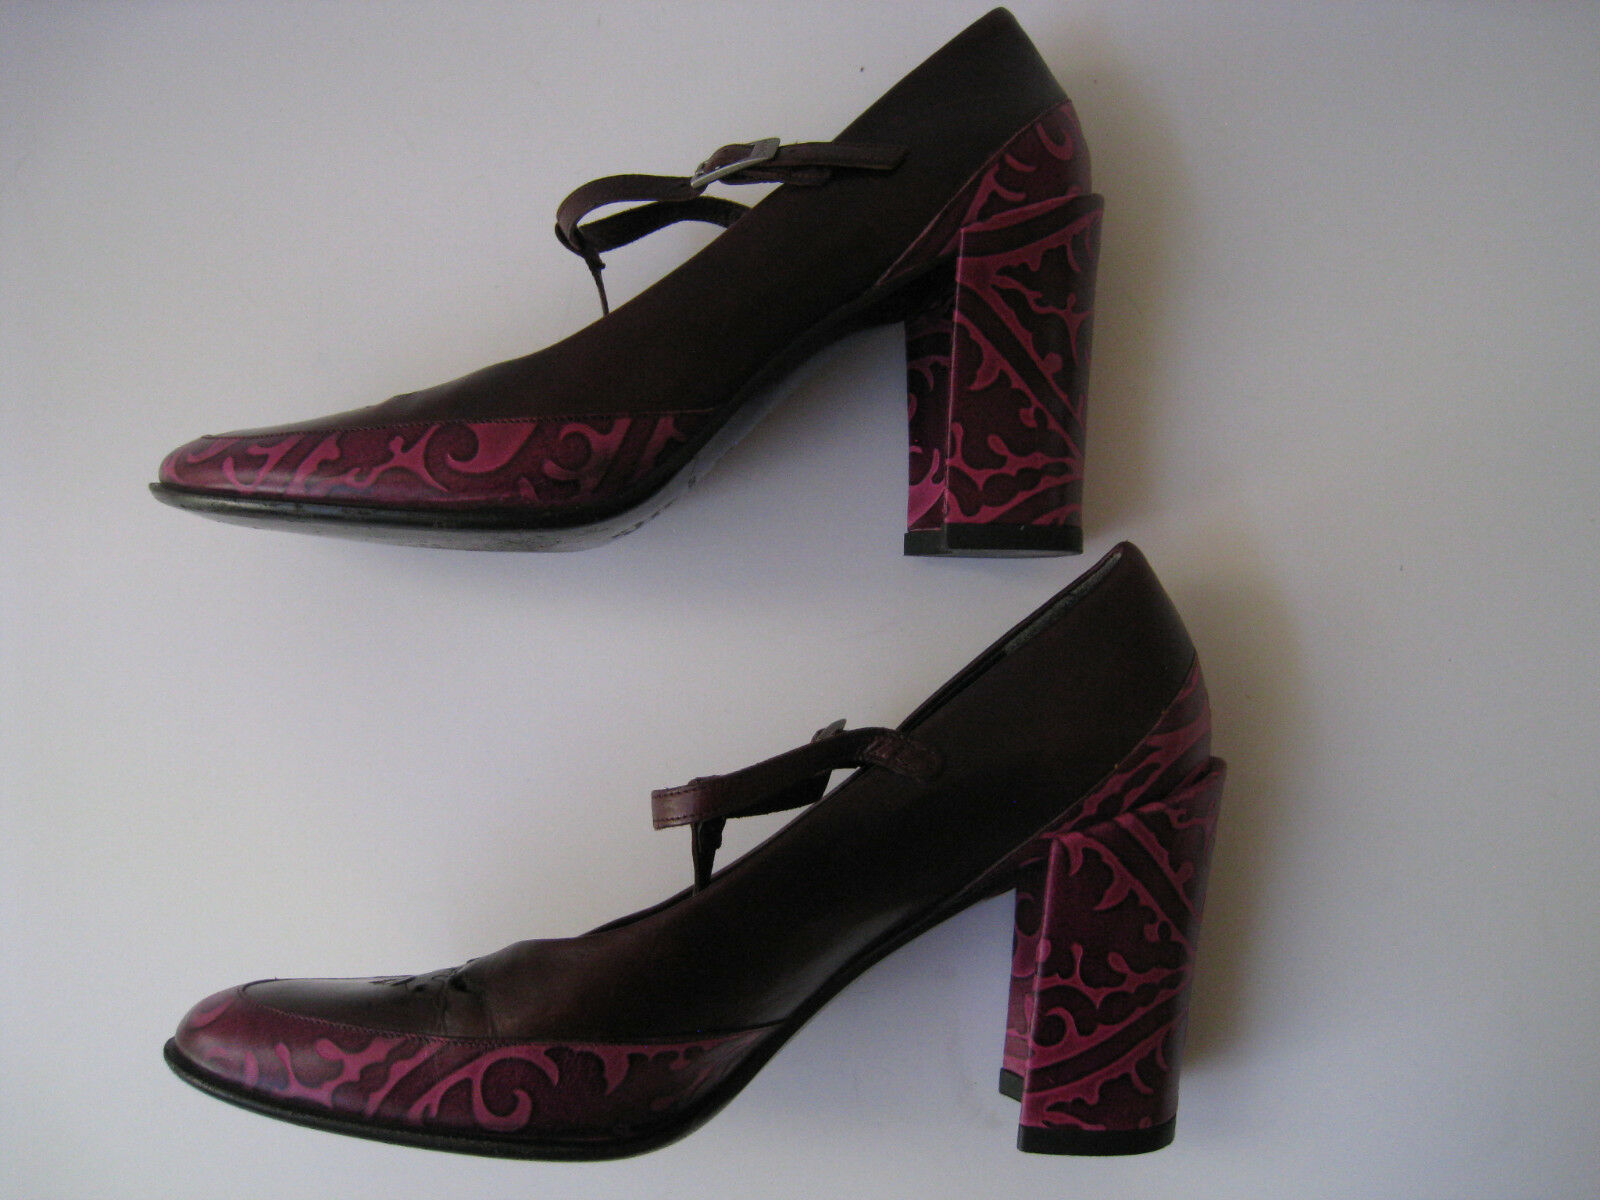 DKNY DKNY DKNY BURGUNDY-Rosa LASER CUT LEATHER T-STRAP HEELS Größe US 8.5 HOT MADE IN ITALY 5a5deb